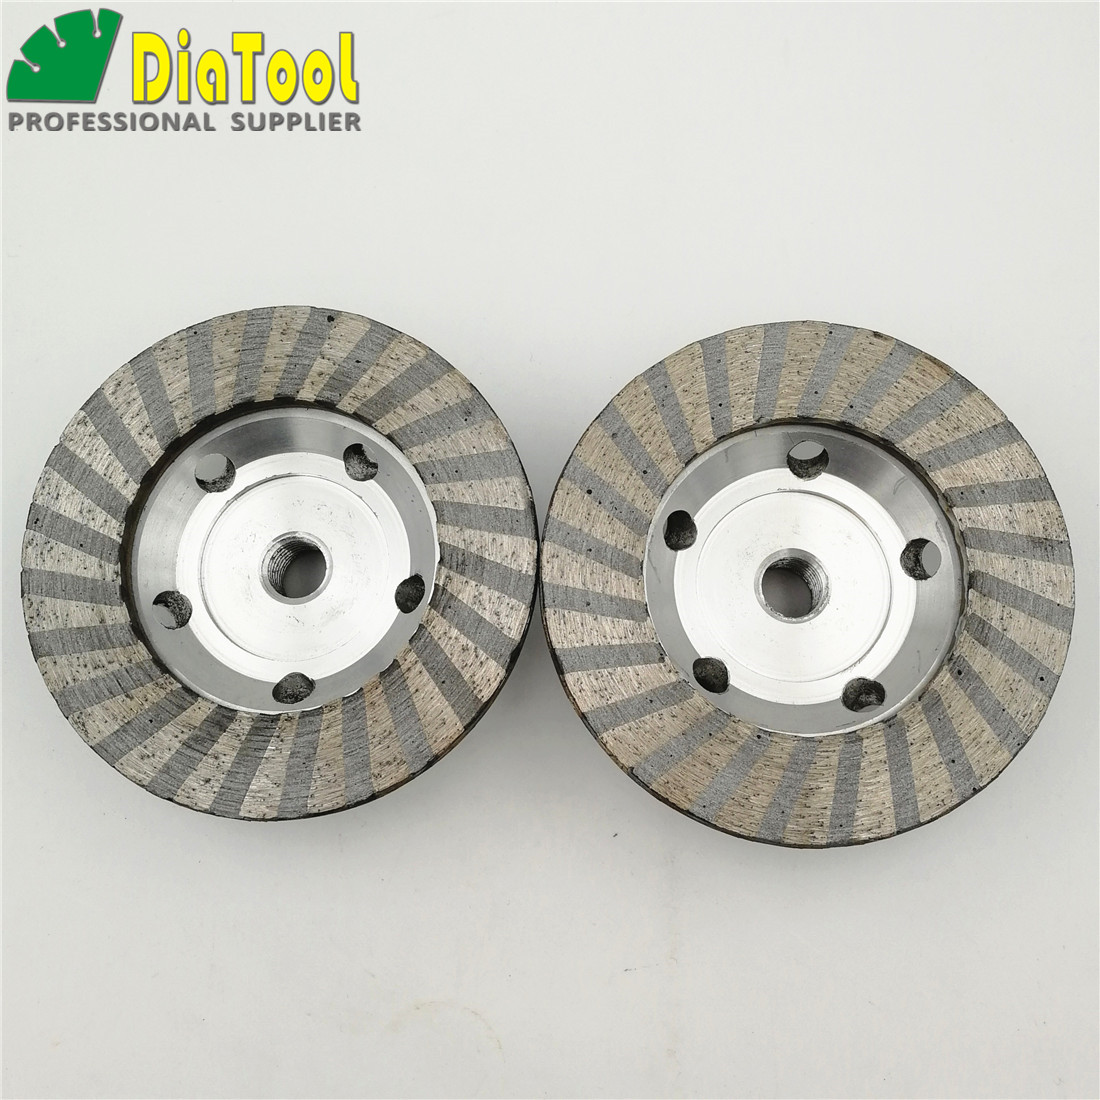 DIATOOL 2pcs 4in M14 Thread Aluminum Based Grinding Cup Wheel #50 #100 Diameter 100mm Diamond Fine Grinding With Great Finishing 2pk diamond double row grinding cup wheel for granite and hard material diameter 4 5 115mm bore 22 23mm with 16mm washer